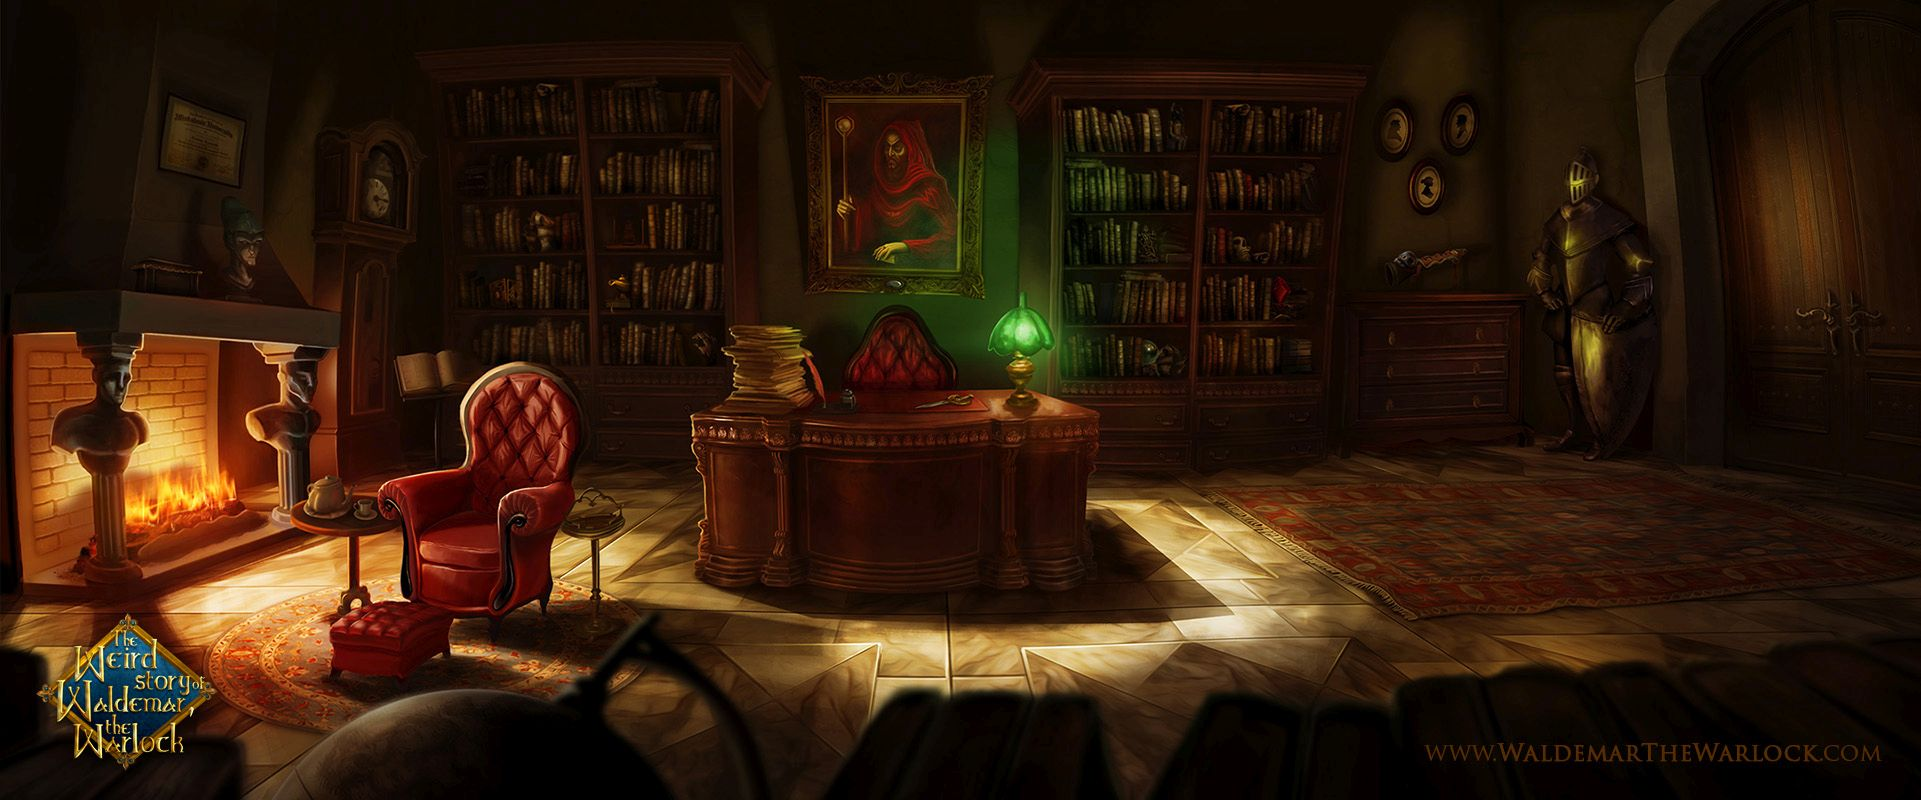 Demos Pc The Weird Story Of Waldemar The Warlock Demo